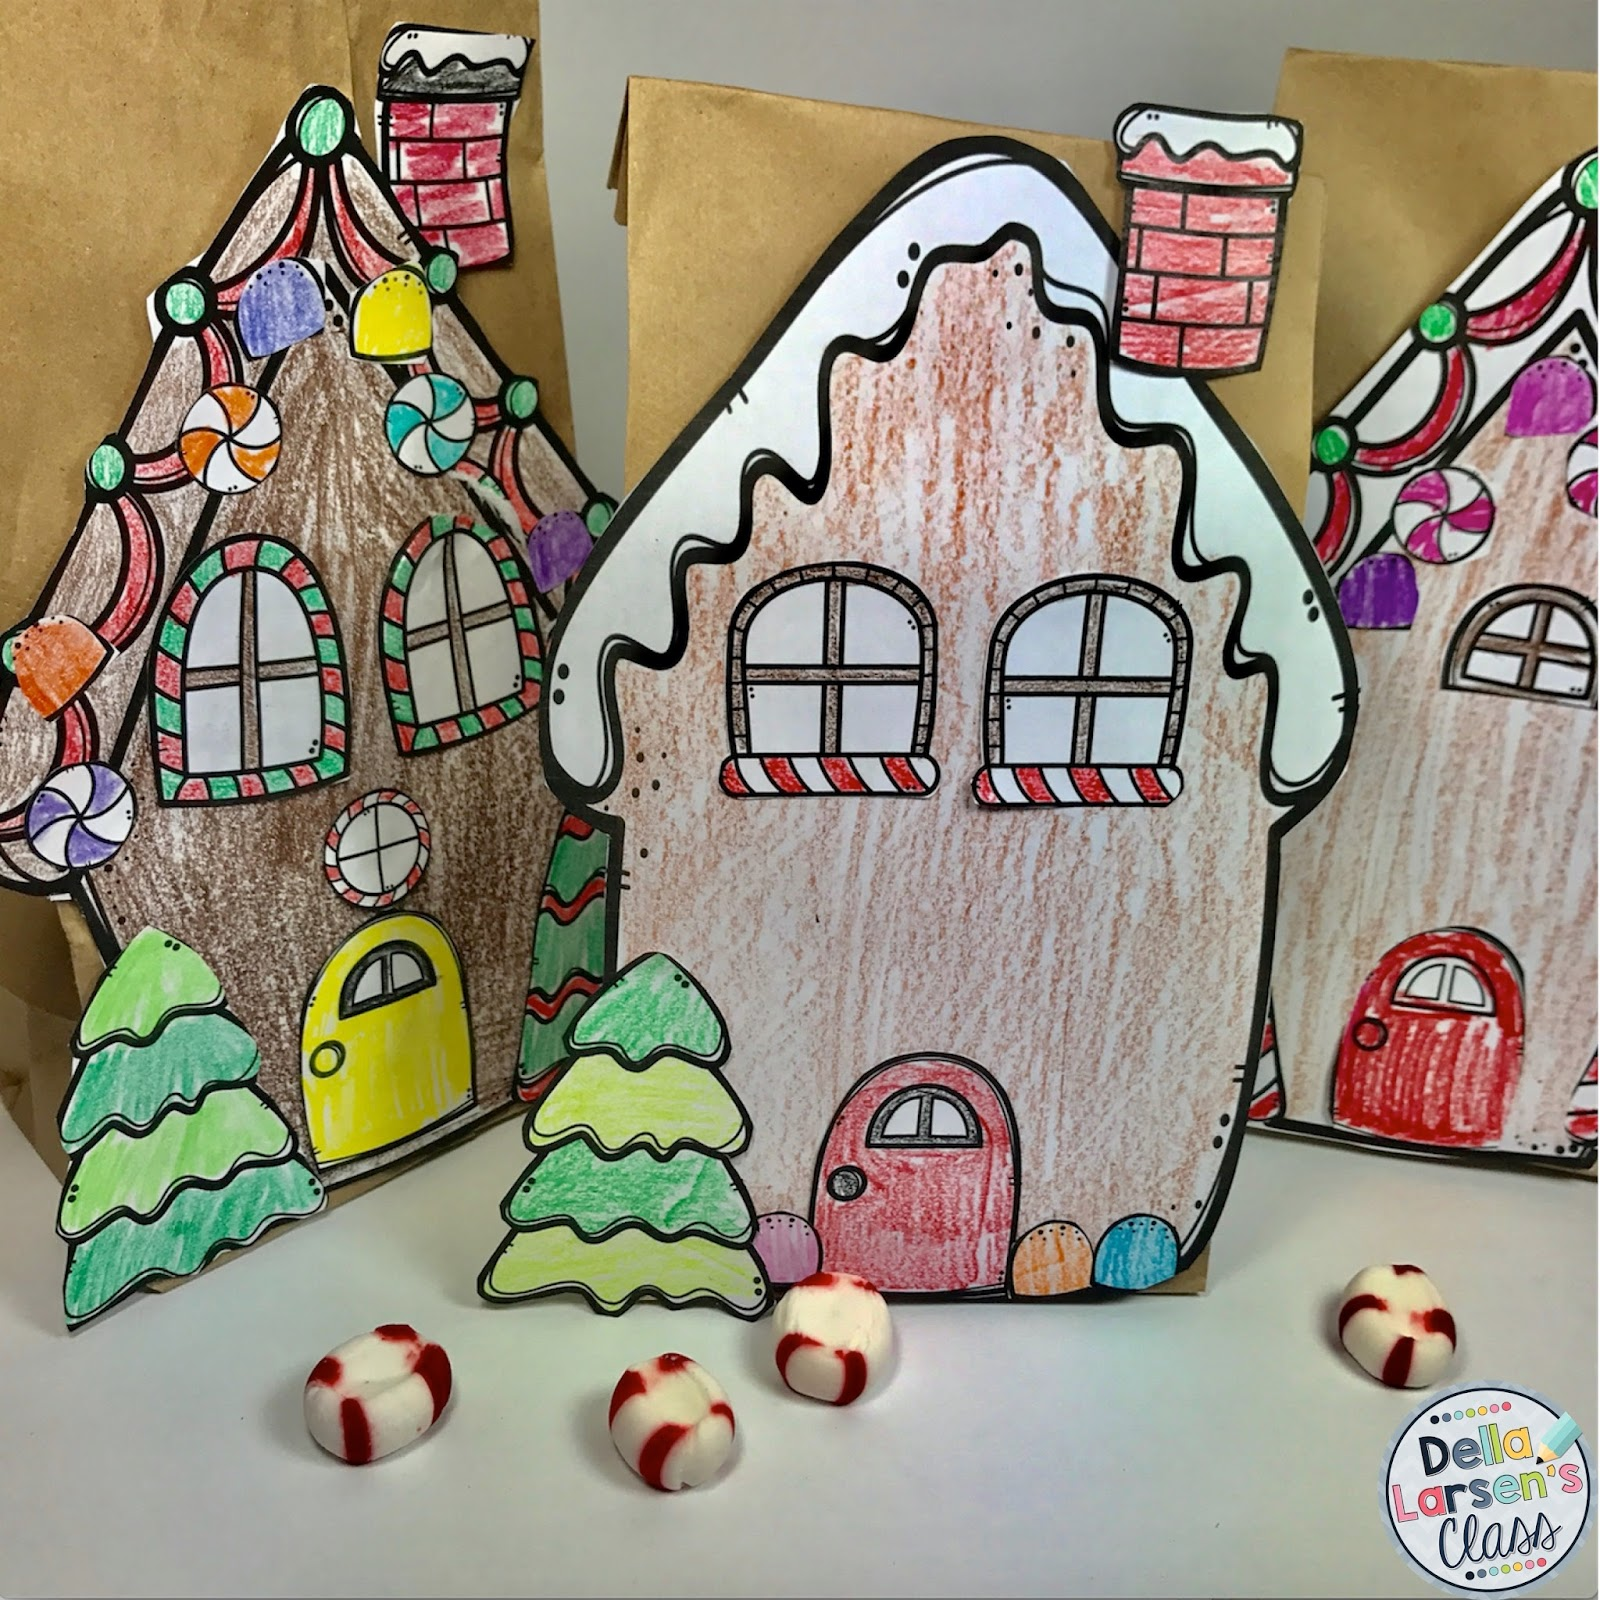 Make Your Own Origami Christmas Gingerbread House - YouTube | 1600x1600